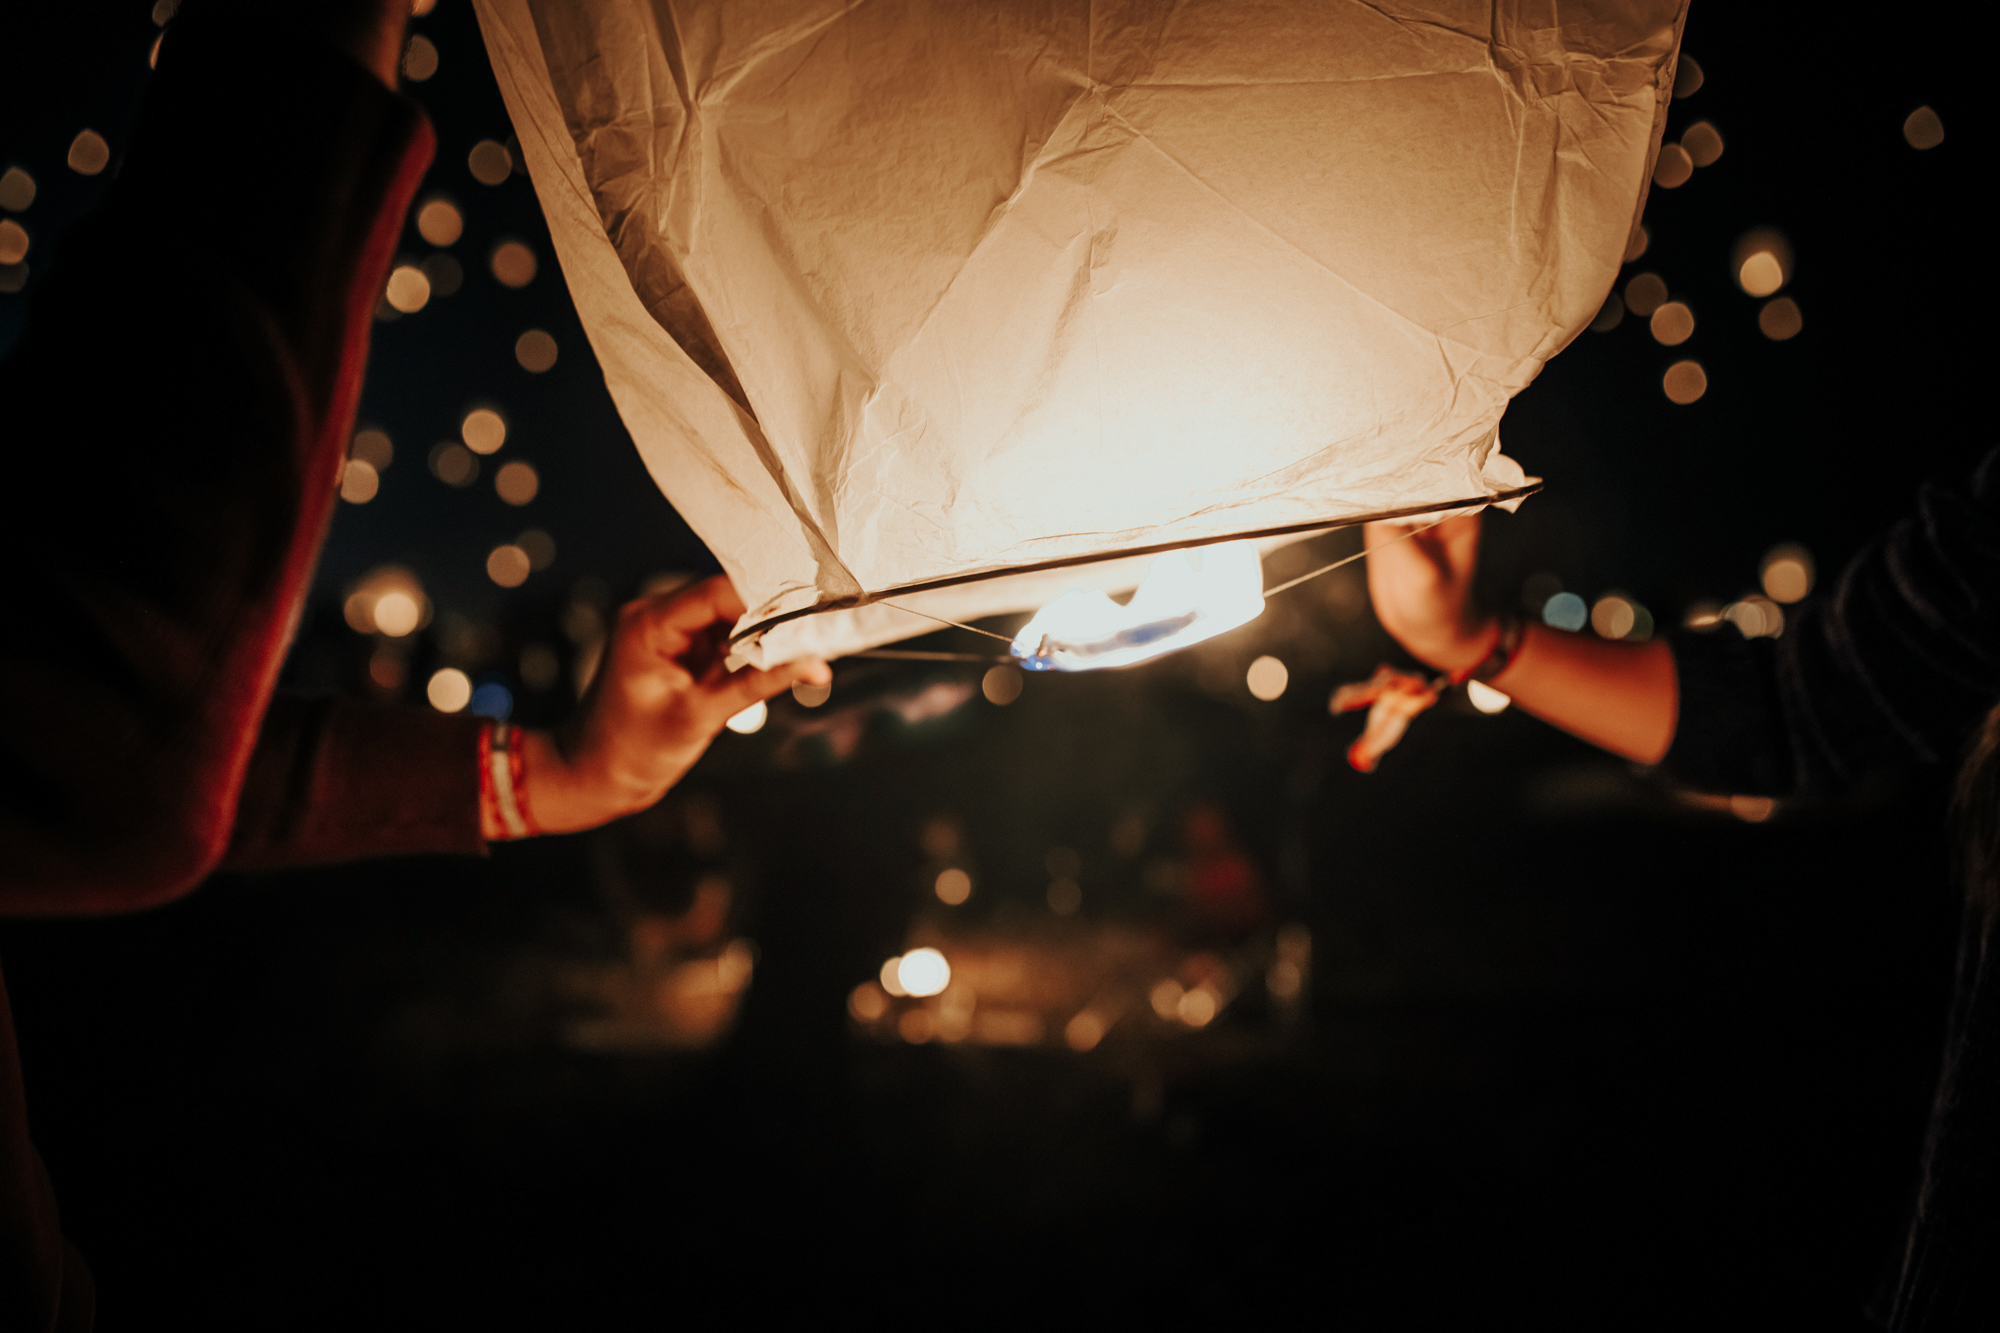 How To Photograph A Chinese Lantern Festival Beginner Tutorial Formed From Light